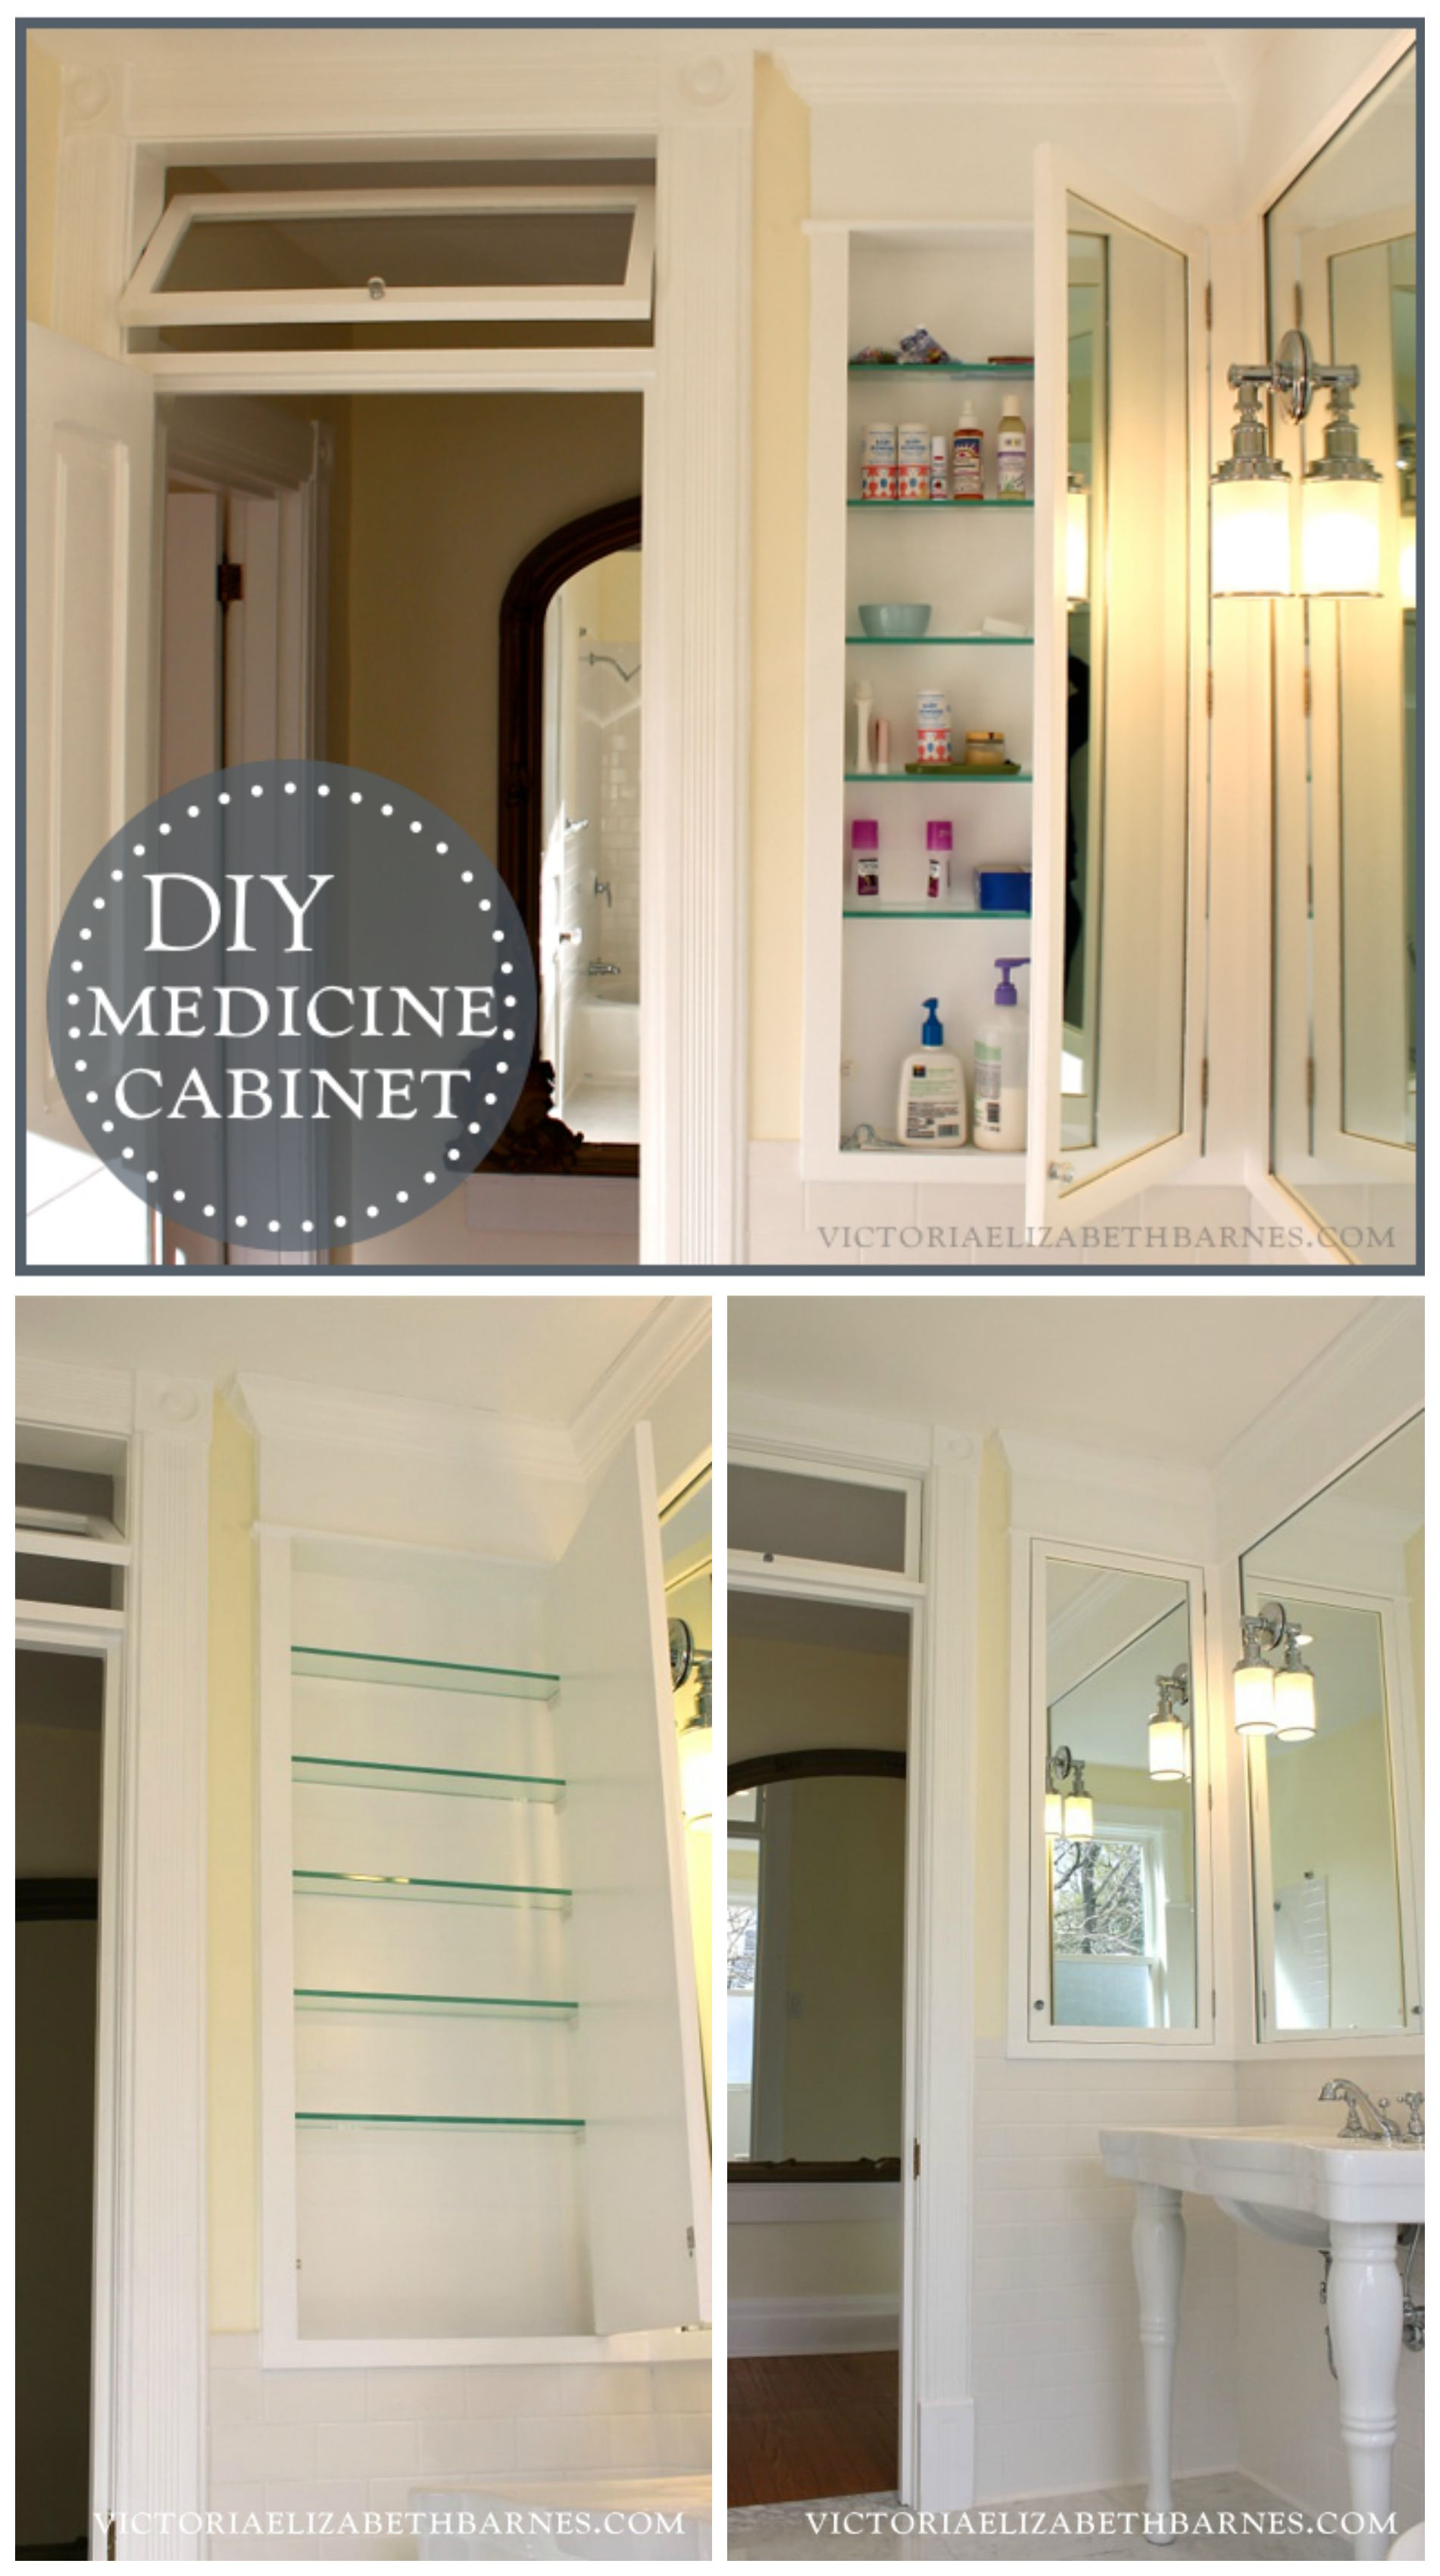 ana projects white cabinet medicine diy